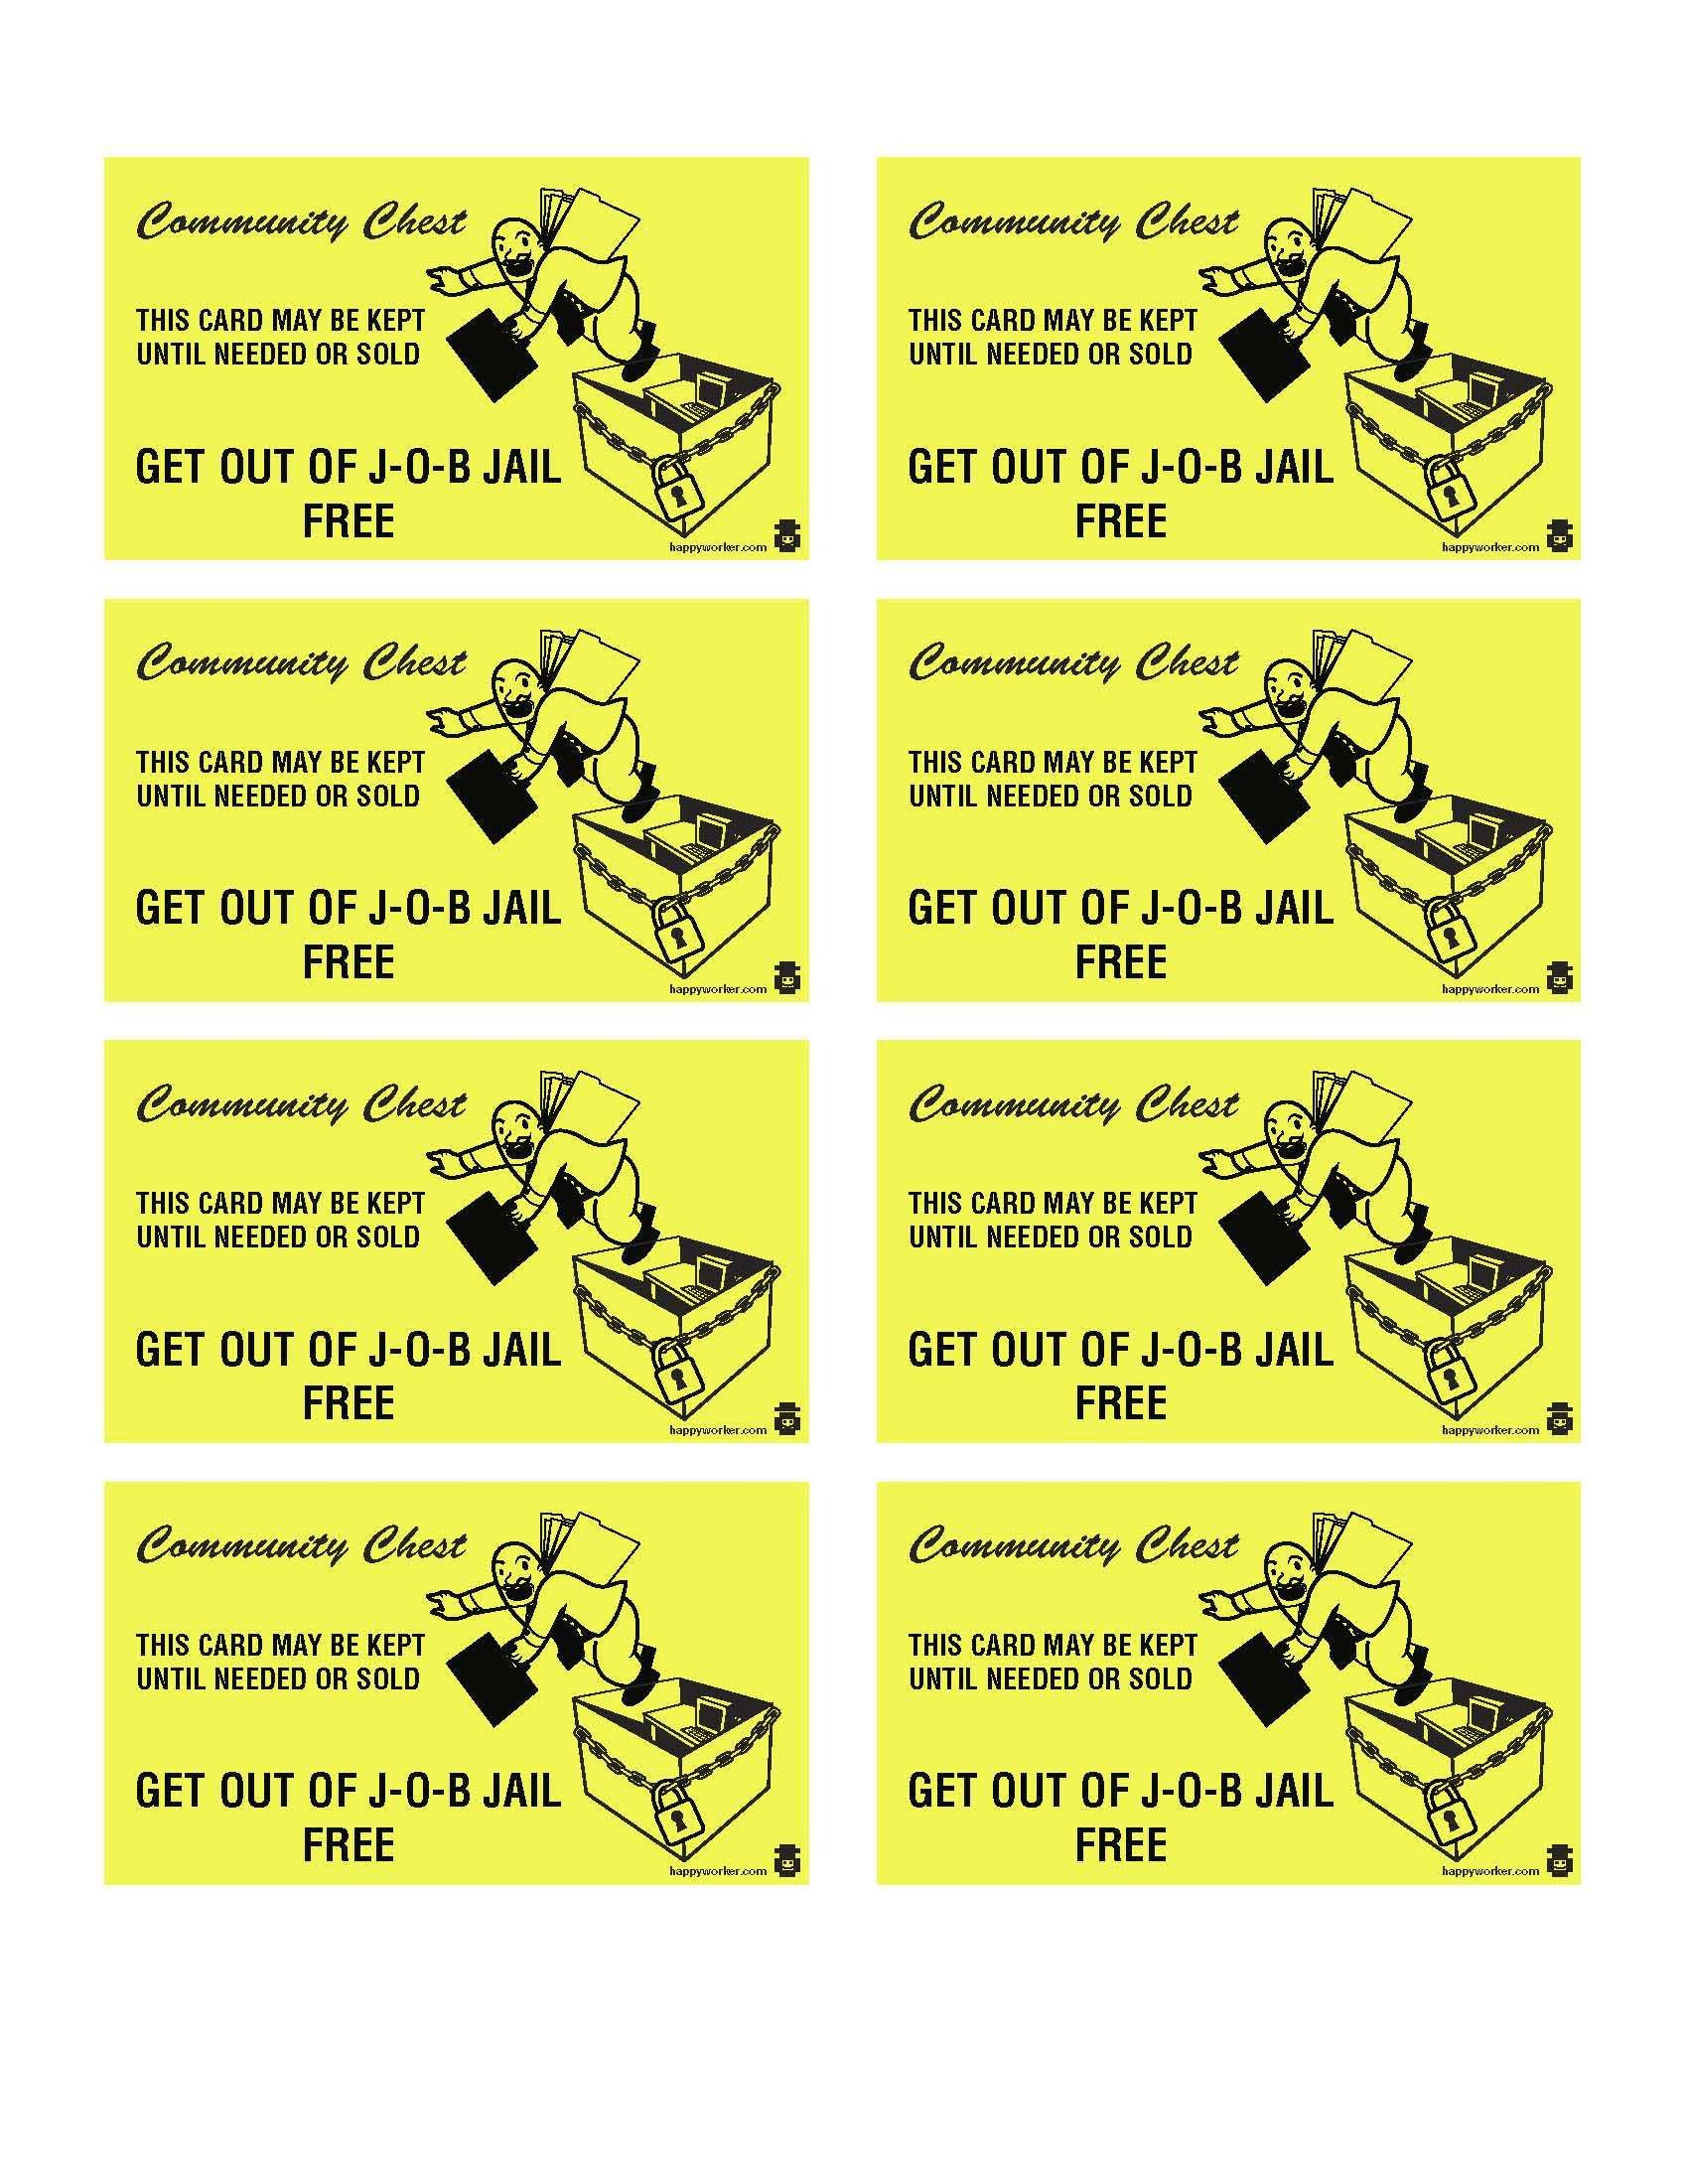 Monopoly Get Out Of Jail Free Card Template Parole For The Throughout Get Out Of Jail Free Card Templ Card Templates Free Valentine Card Template Card Template